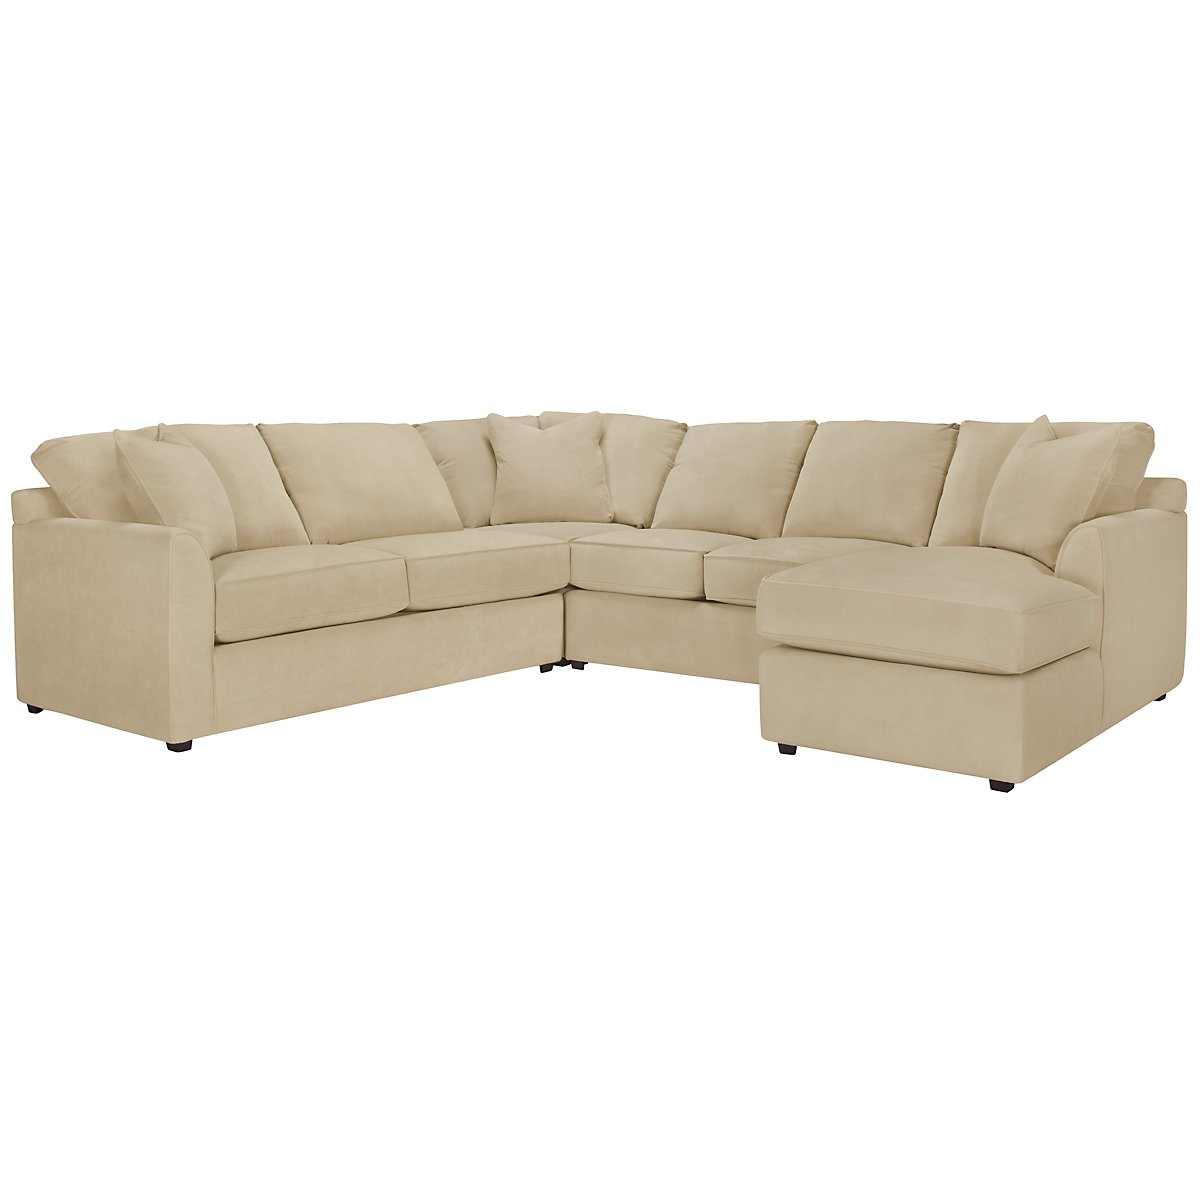 Express3 Light Beige Microfiber Small Right Chaise Sectional